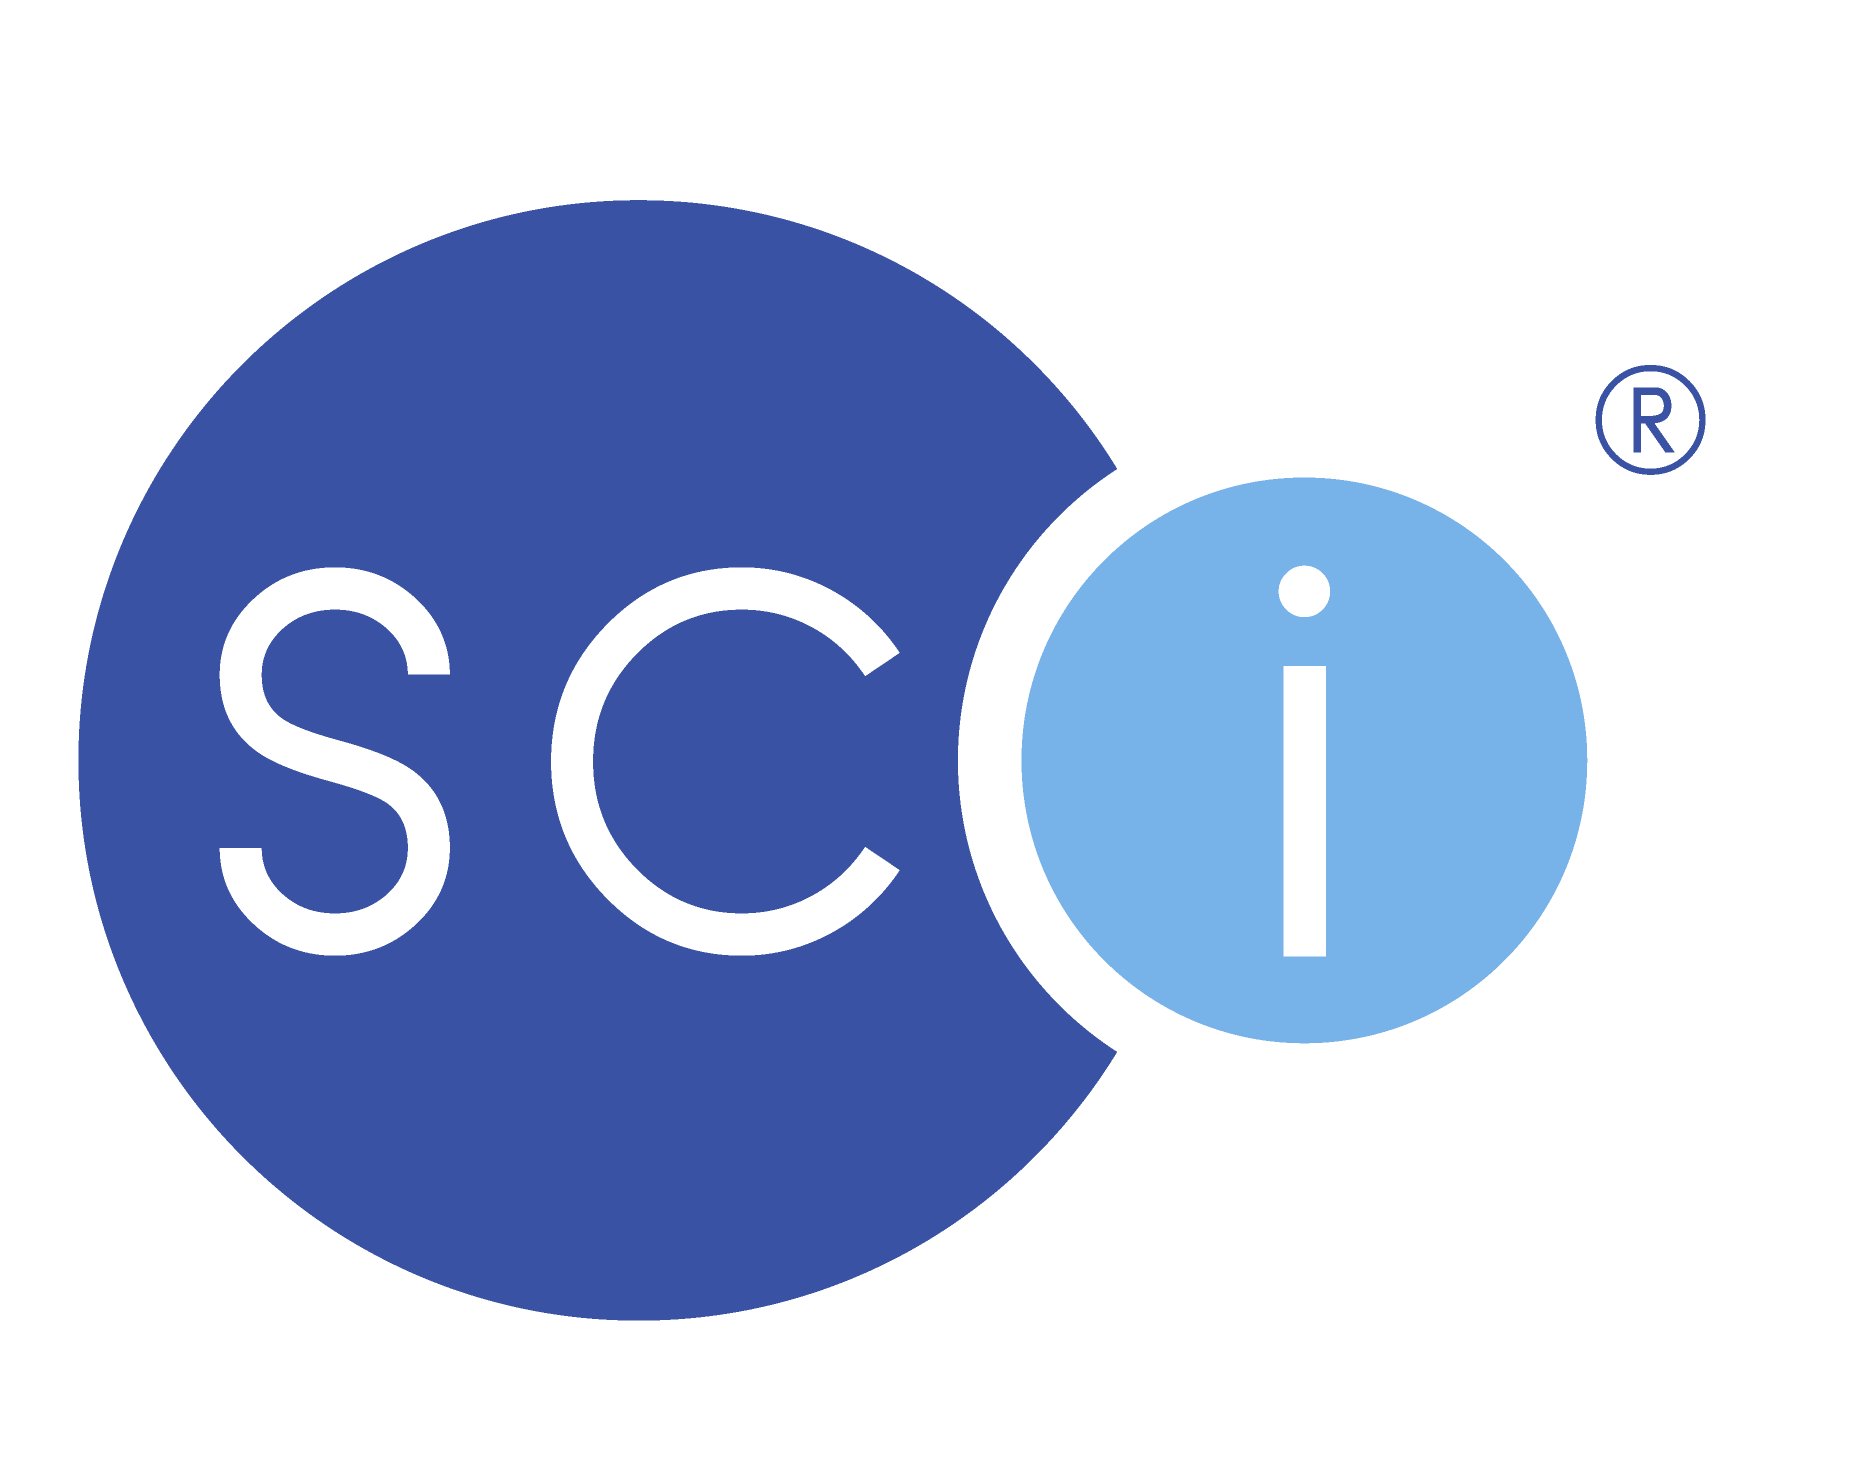 SCi1.png